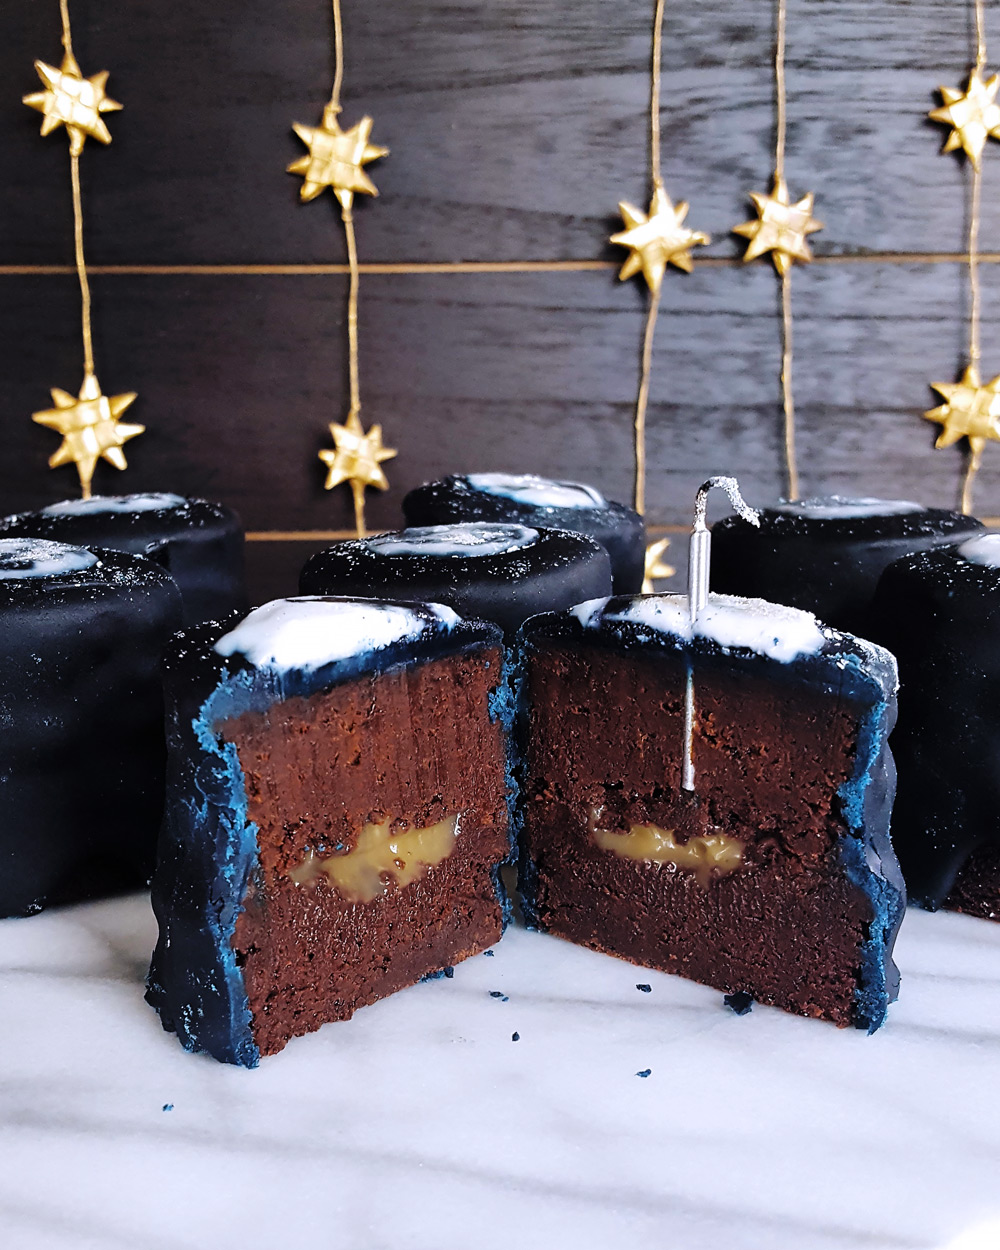 A chocolate layer cake cut up to reveal the caramel filling. FeastInThyme.com